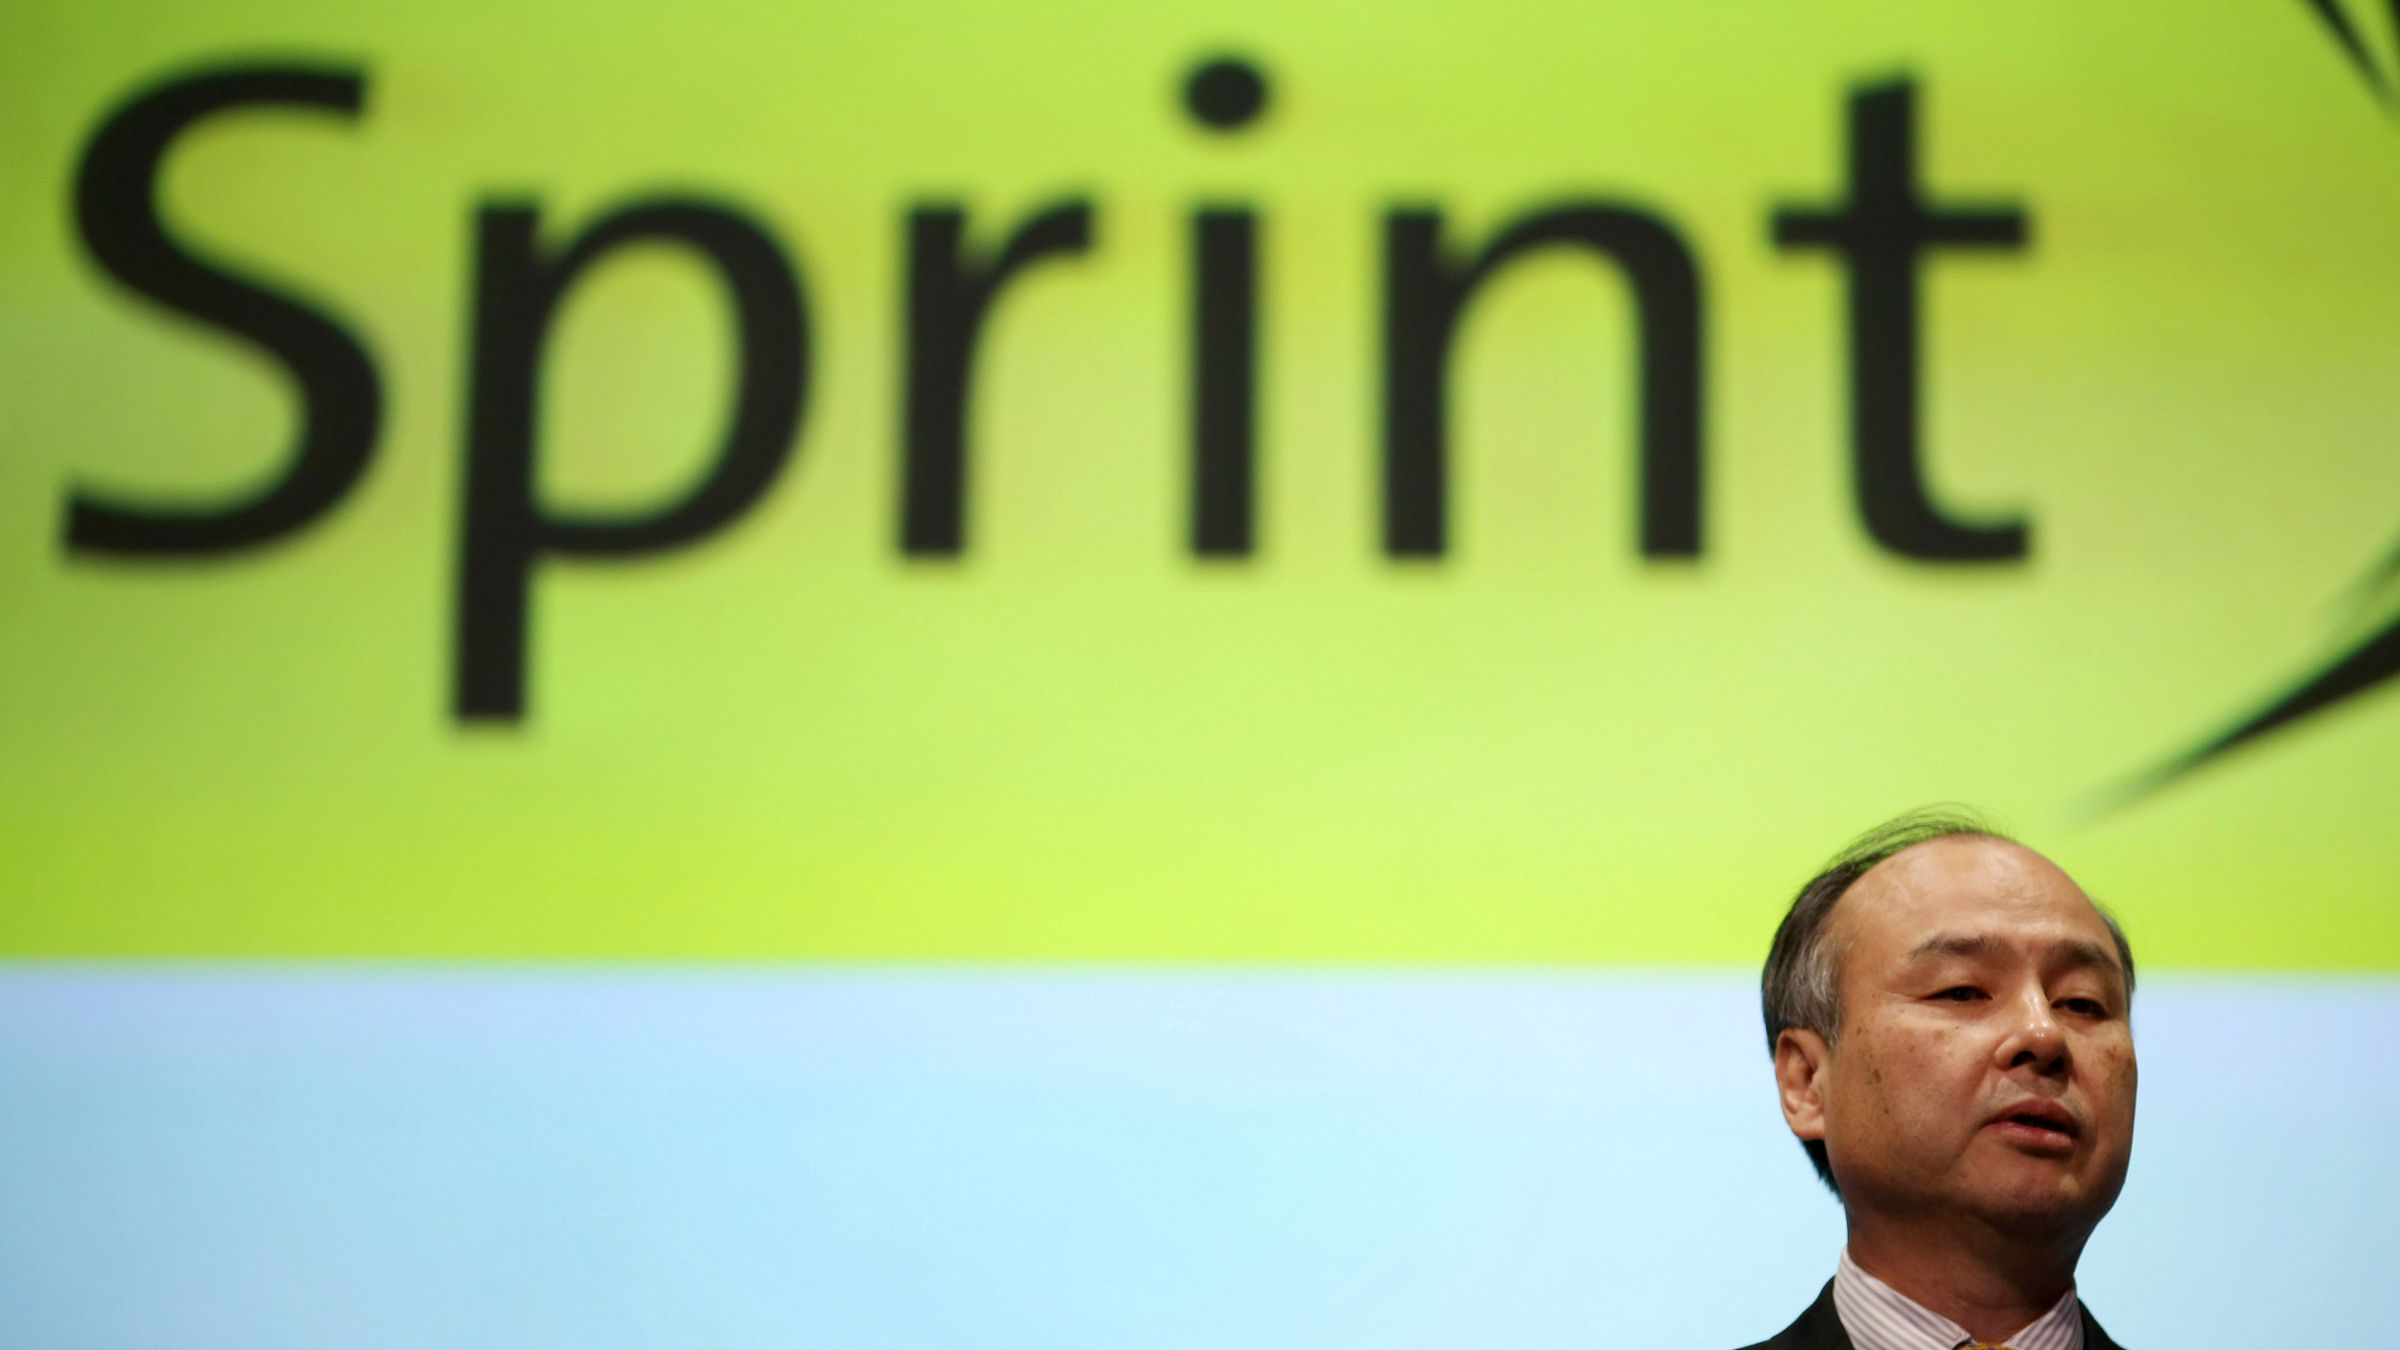 Softbank founder and chief executive Masayoshi Son speaks in front of a logo of U.S. telecom company Sprint  during a news conference in Tokyo, Tuesday, Nov. 4, 2014. Softbank's quarterly profit nearly tripled as gains from the IPO of Chinese e-commerce company Alibaba offset losses at U.S. mobile carrier Sprint. ()